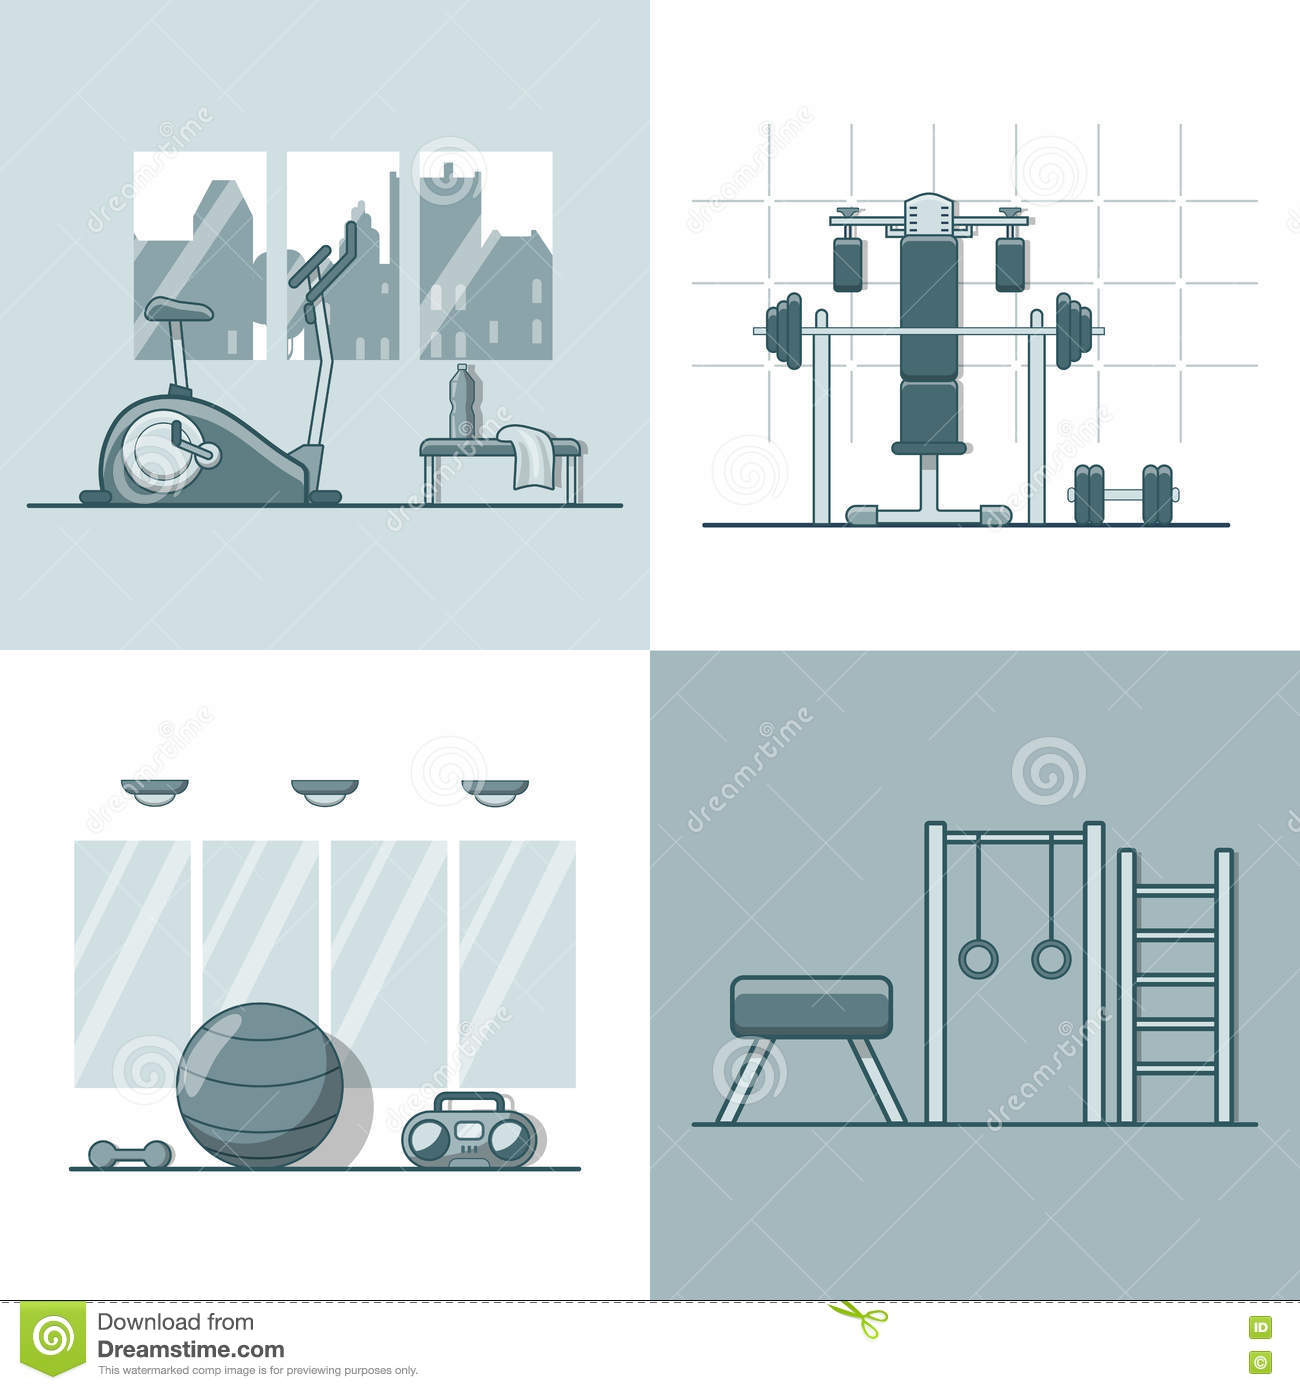 Gym exercise equipment room interior indoor set l stock